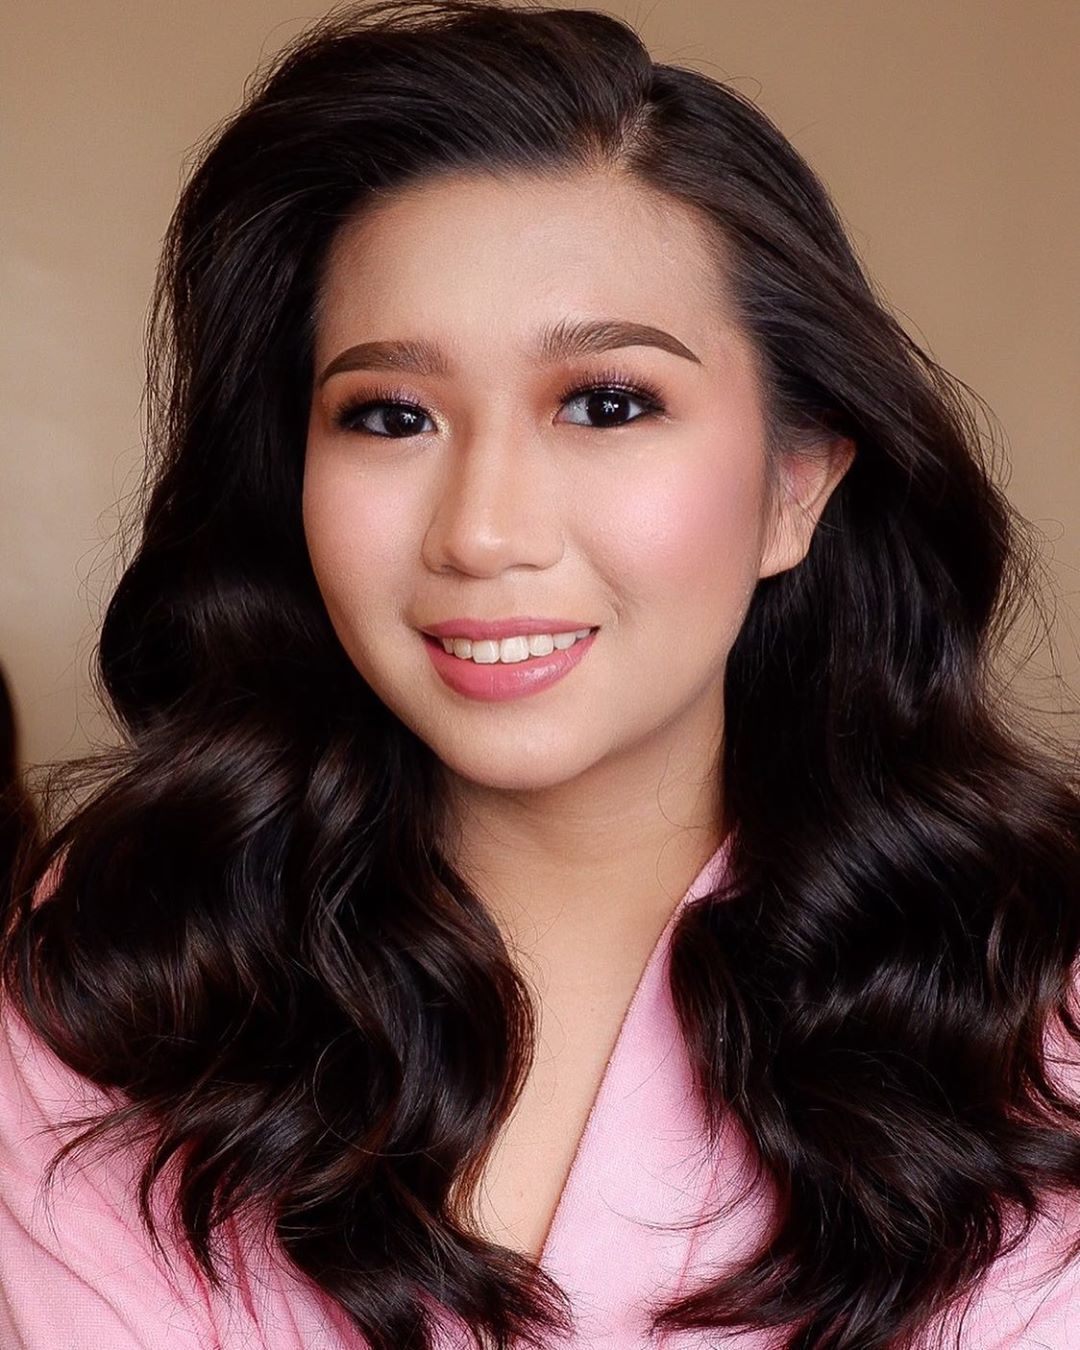 G L O W I N G Debutant 11 17 19 Tonimendozaaa B E A U T Y Vastery Artistry Hair And Makeup Hairstyl Wedding Makeup Artist Top Makeup Artists Hair Makeup